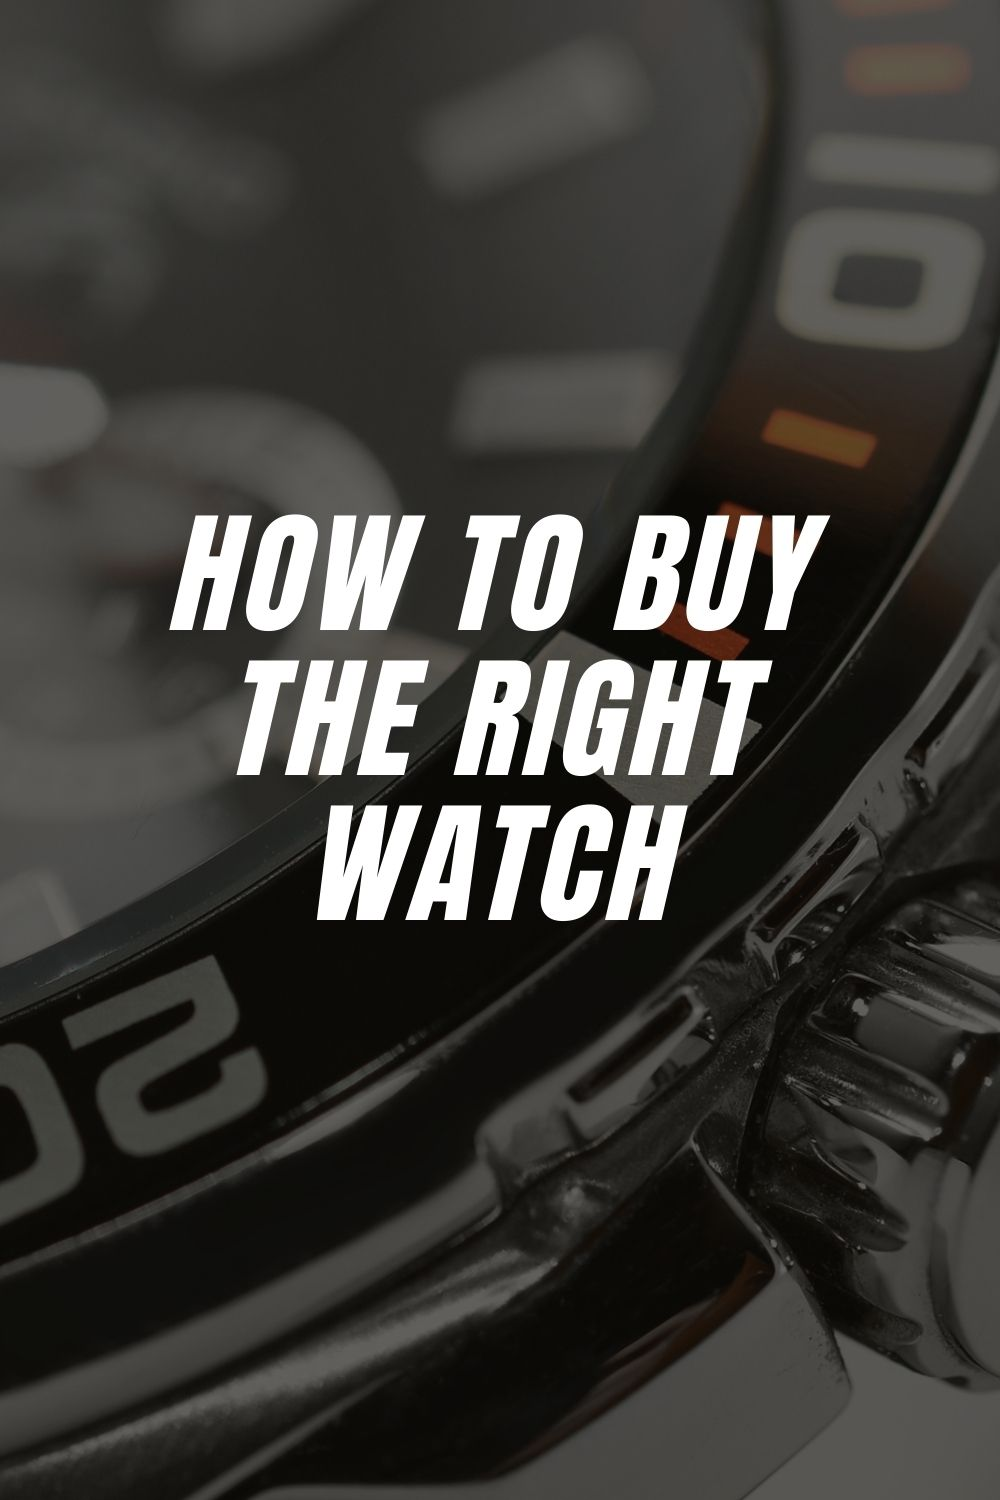 How to Buy the Right Watch